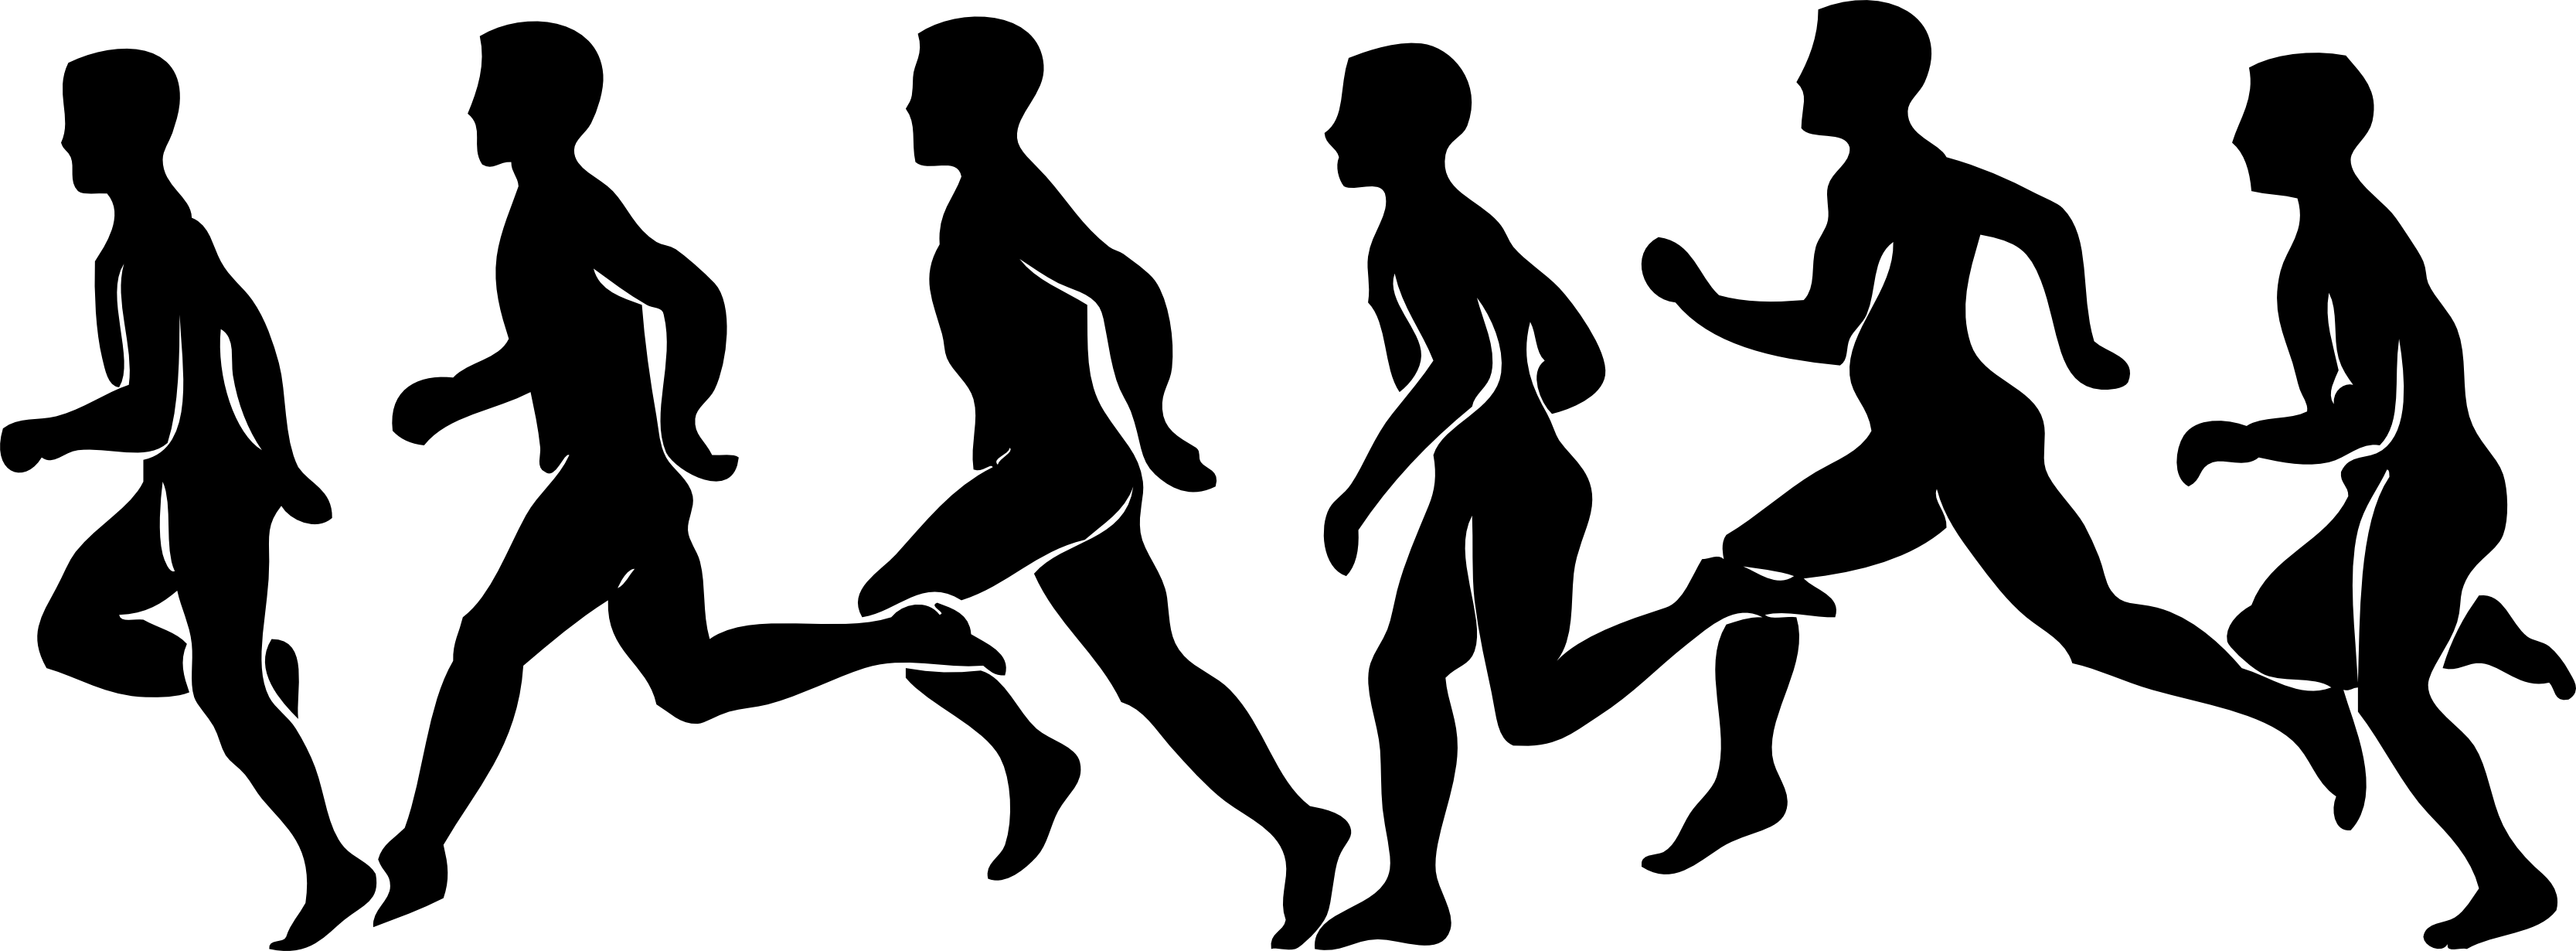 Exercising clipart runner. Person running people wikiclipart